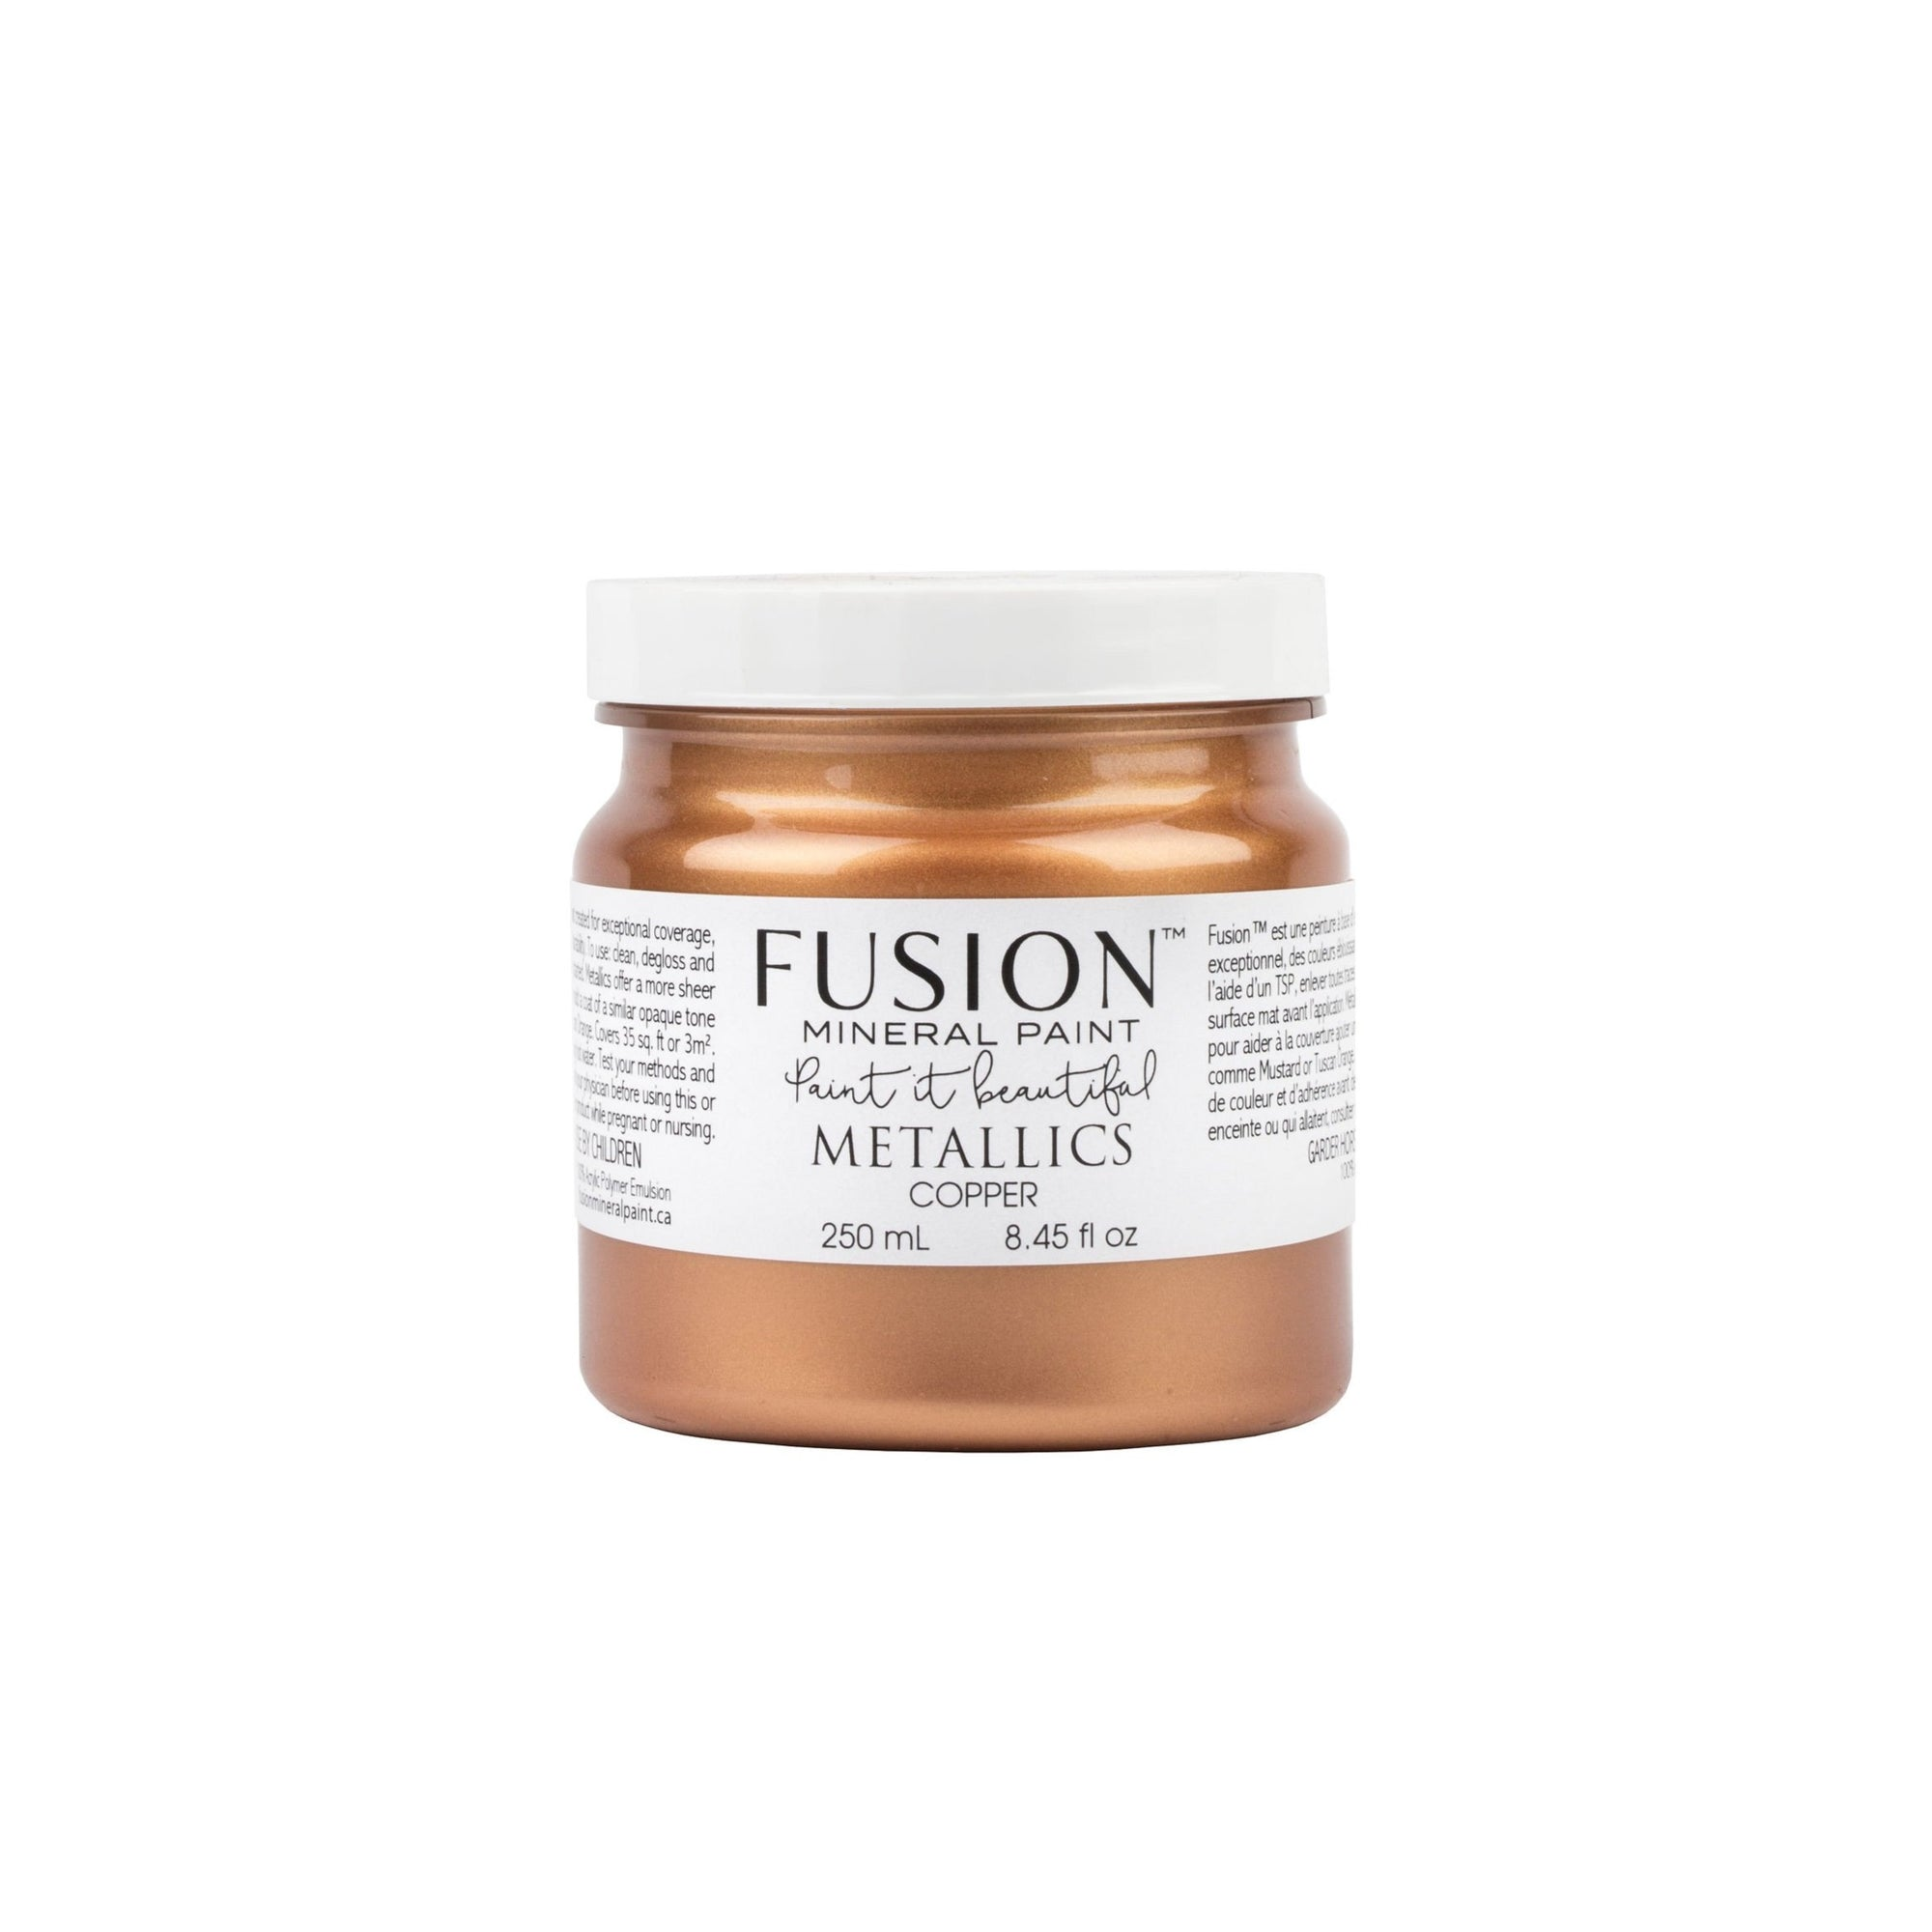 fusion mineral paint farmhouse inspired metallic copper